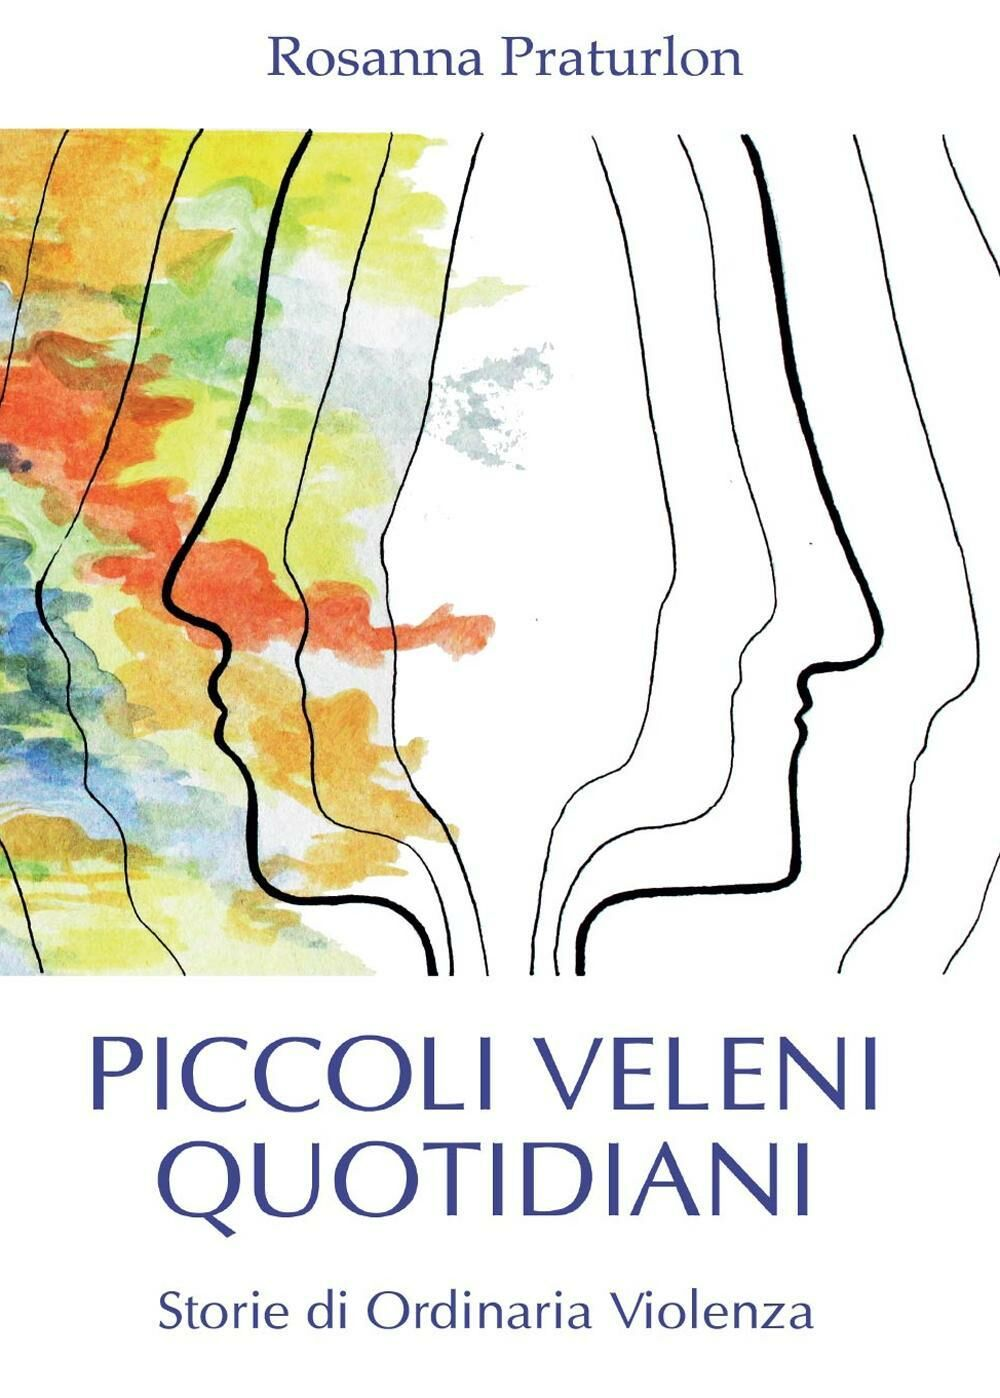 Piccoli veleni quotidiani